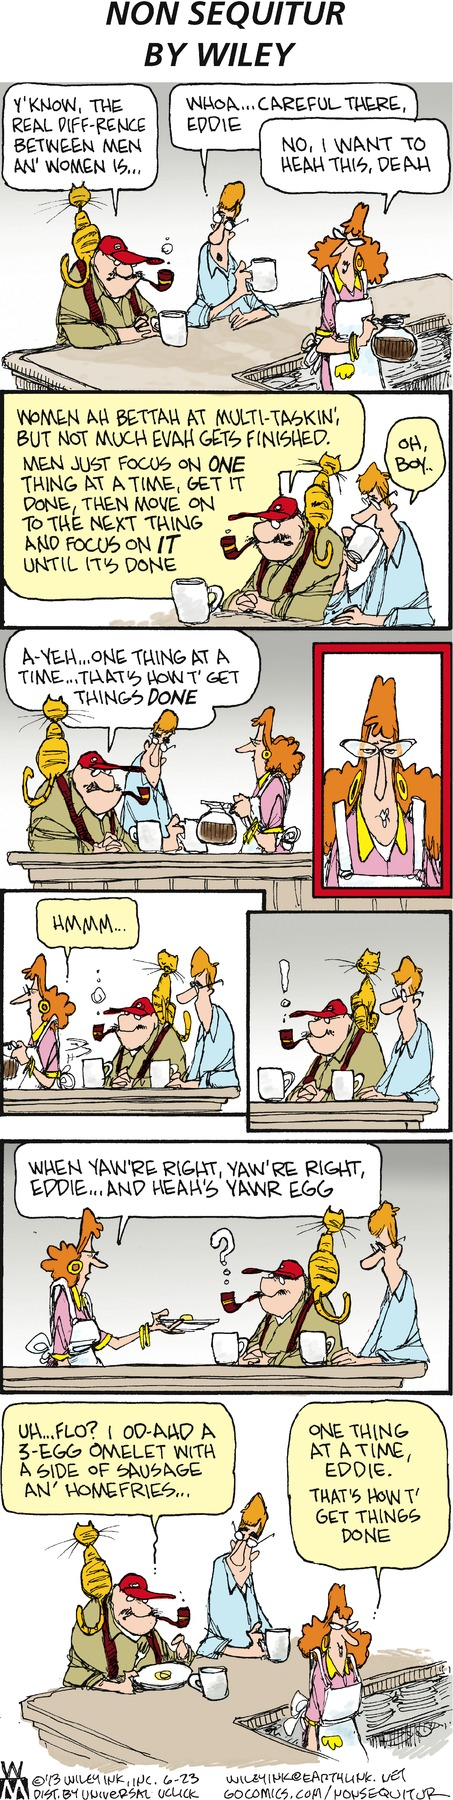 Non Sequitur for Jun 23, 2013 Comic Strip